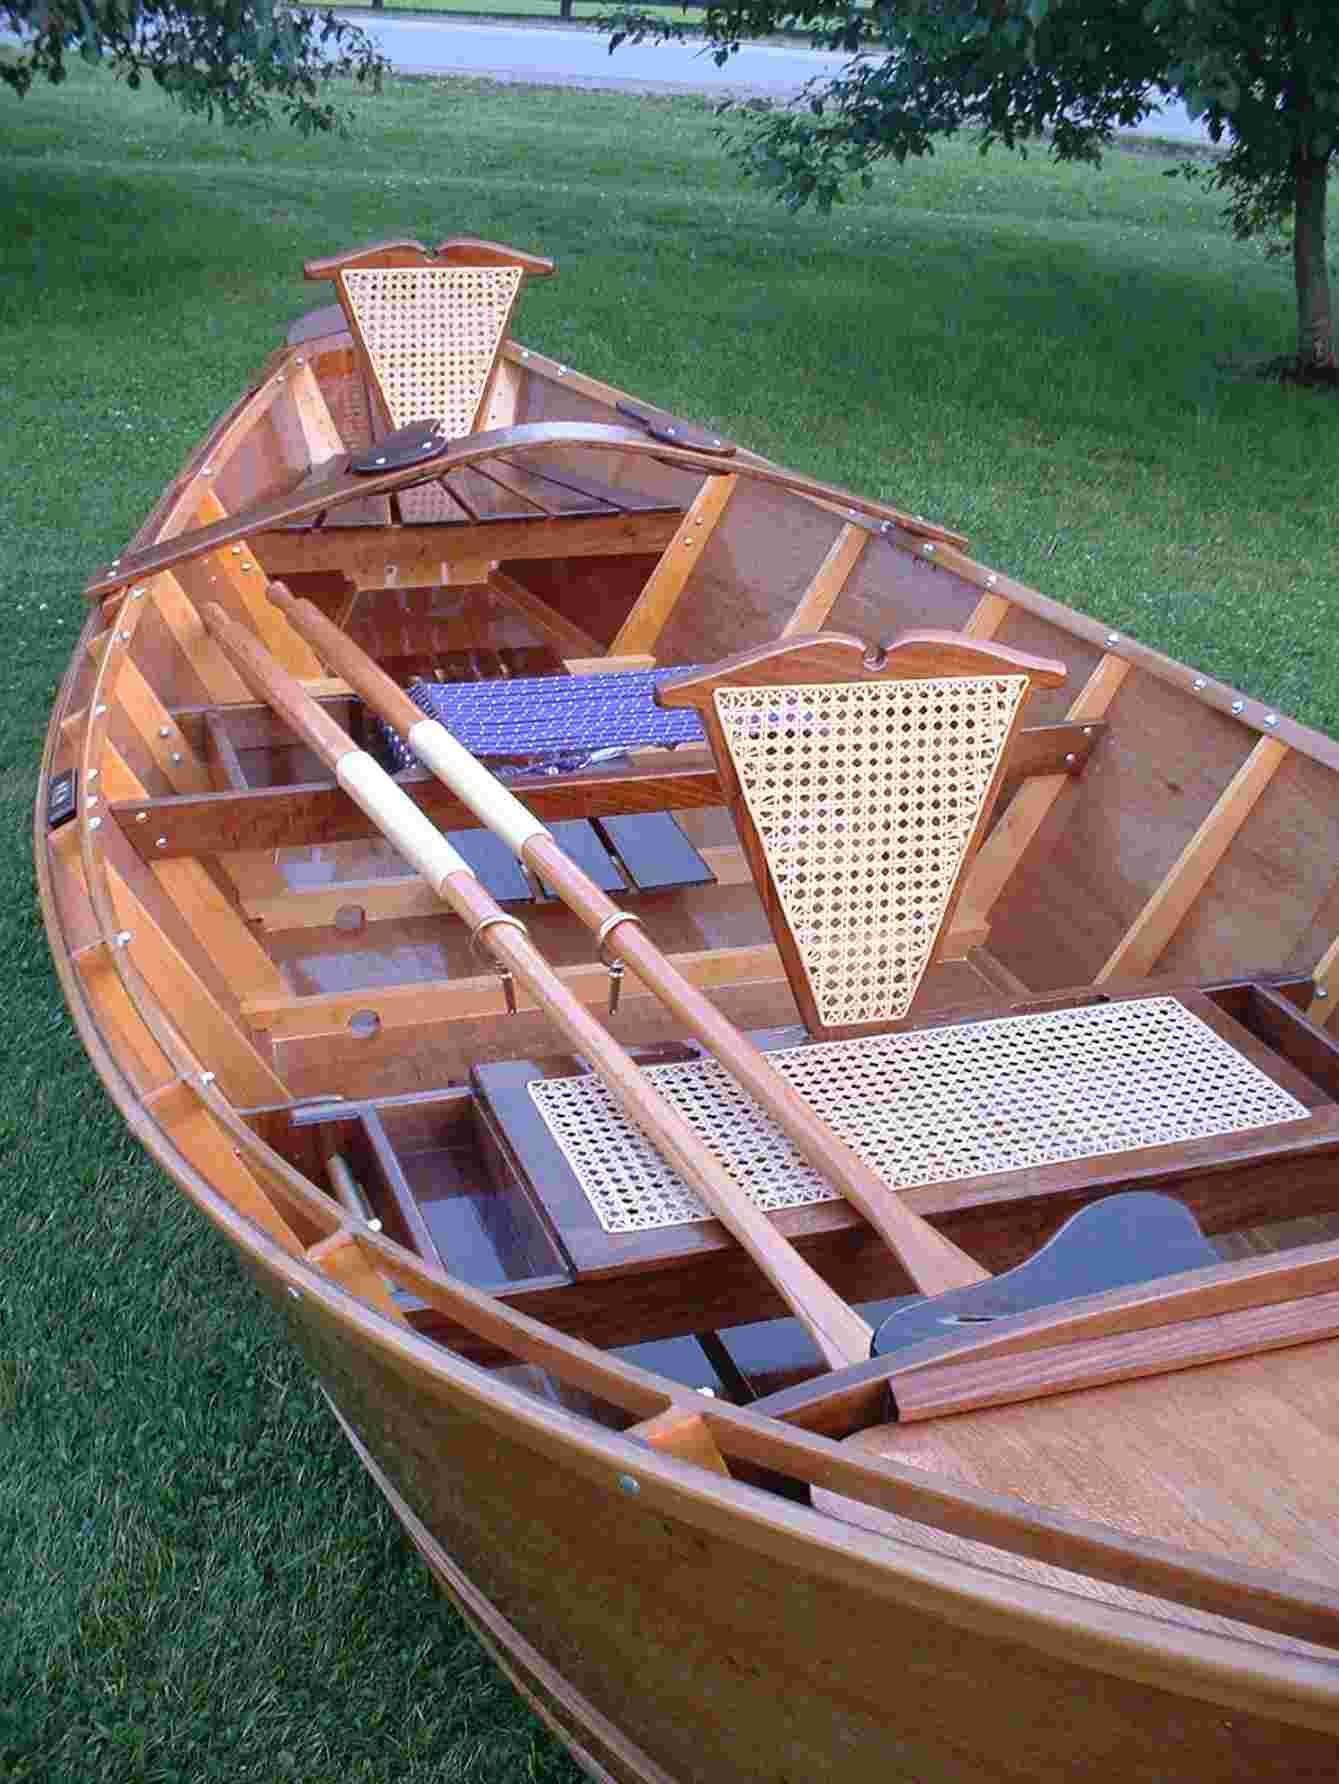 Homemade Wooden Boats Building a wooden flyfishing